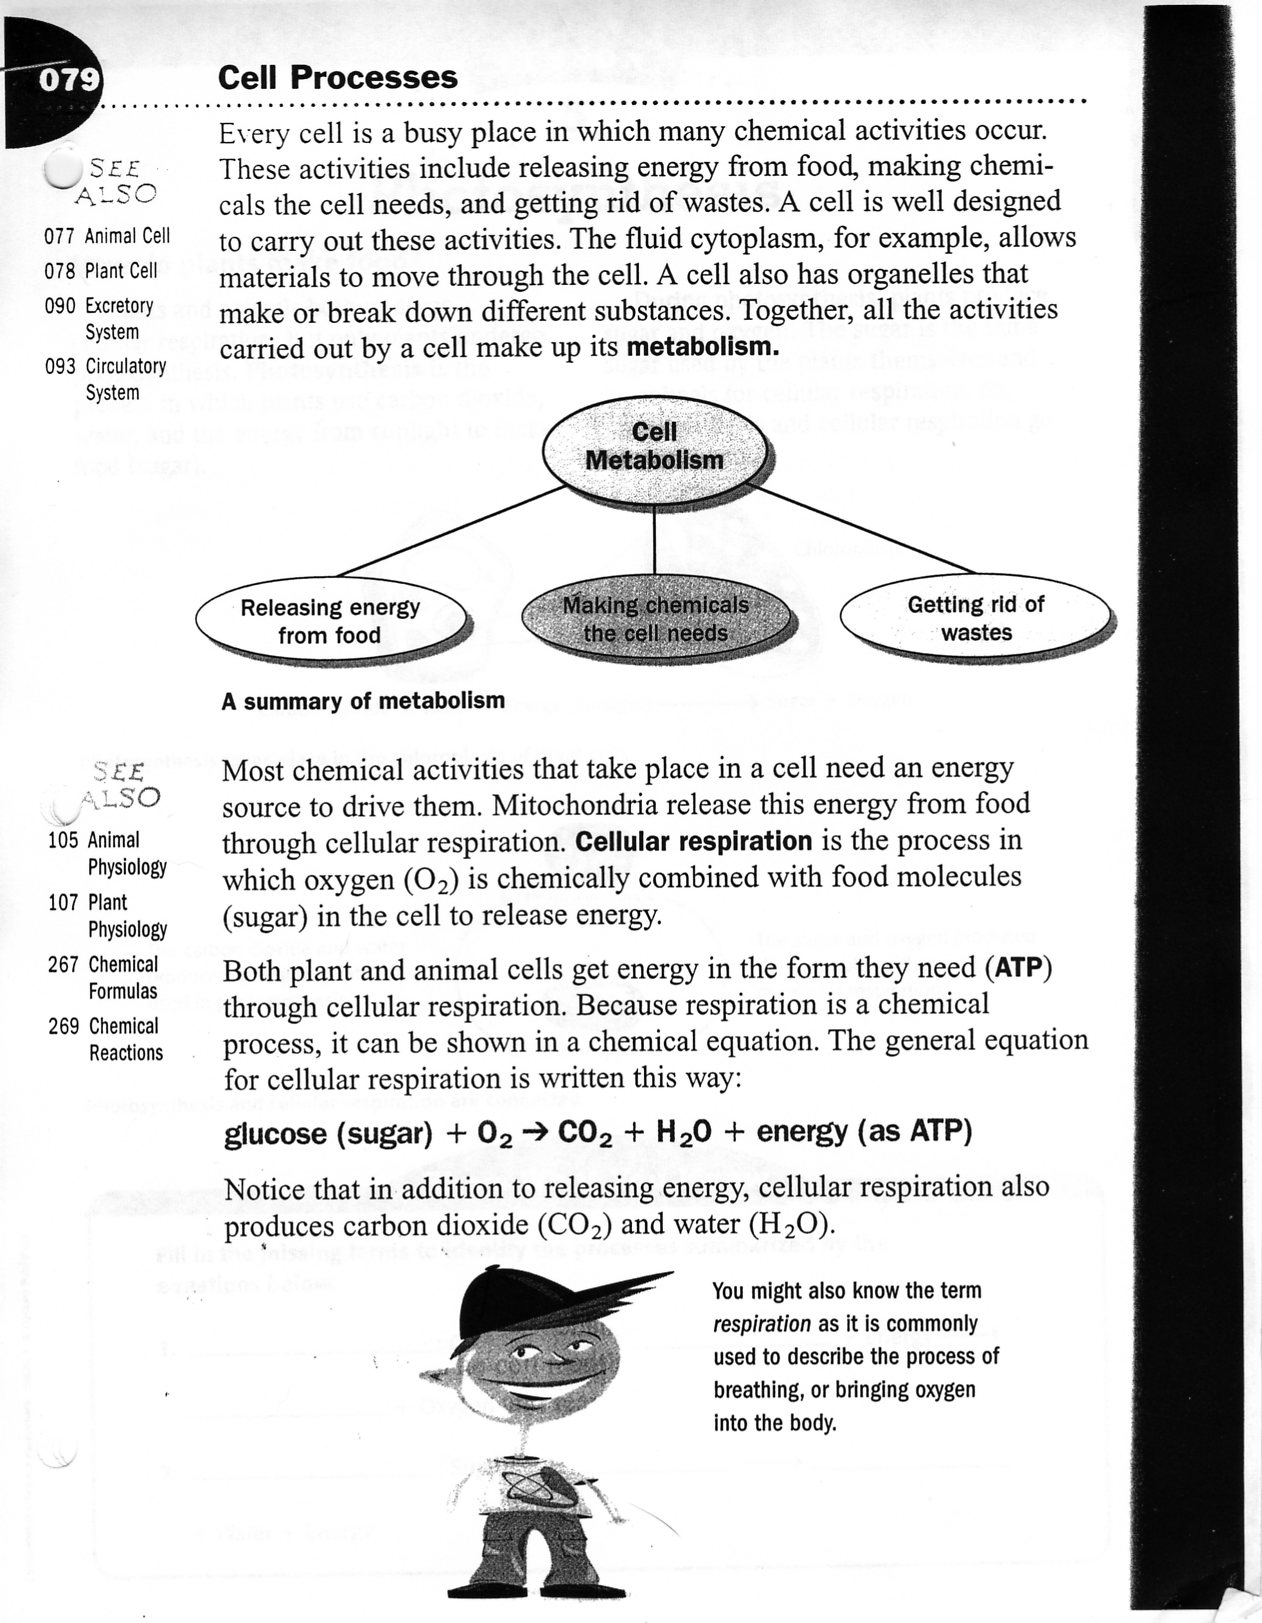 Worksheets Characteristics Of Life Worksheet life science cell processes worksheet